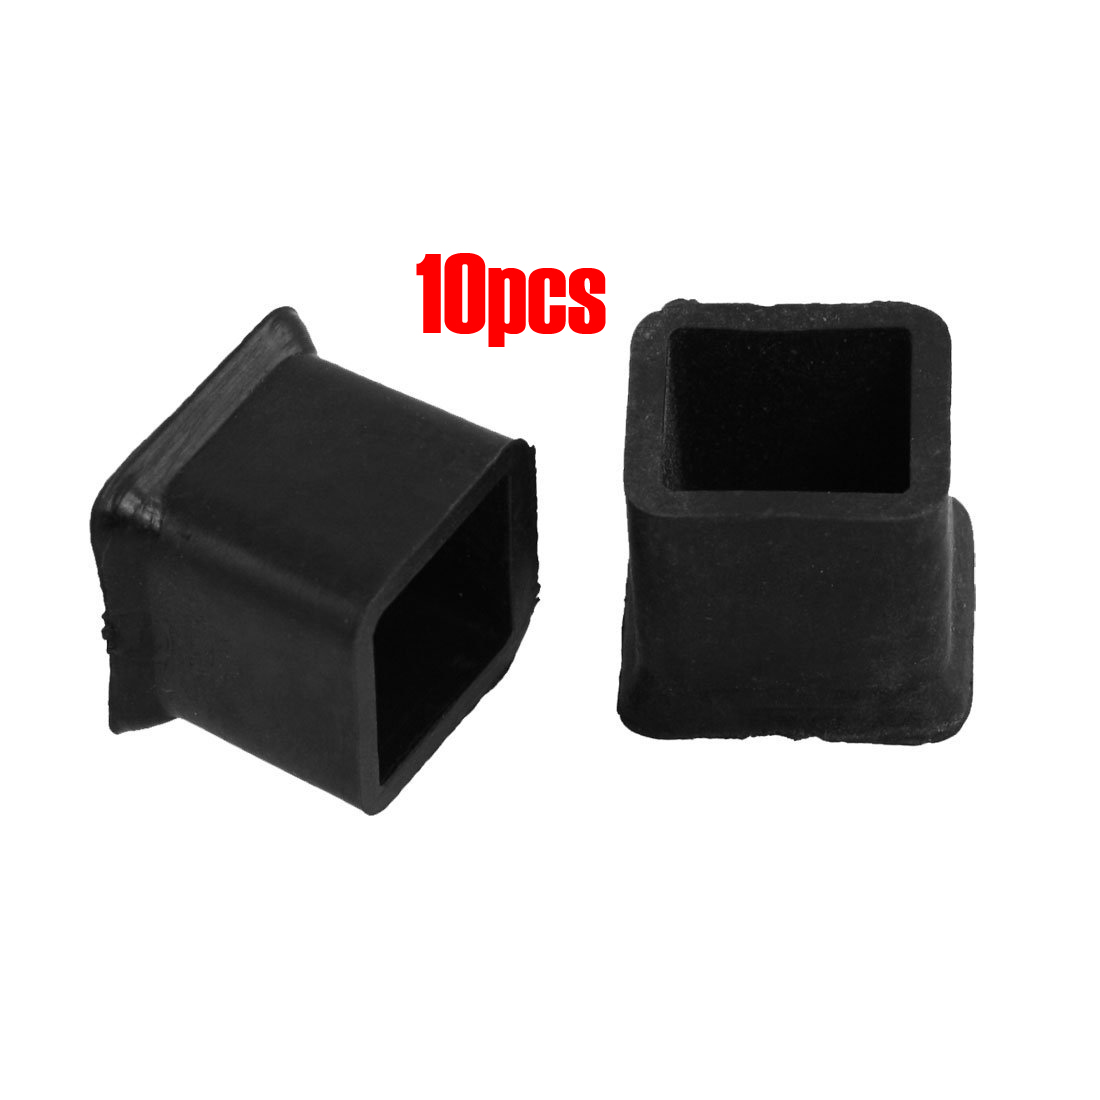 10 Pcs Furniture Chair Table Leg Rubber Foot  s Protectors 20mm x 20mm10 Pcs Furniture Chair Table Leg Rubber Foot  s Protectors 20mm x 20mm